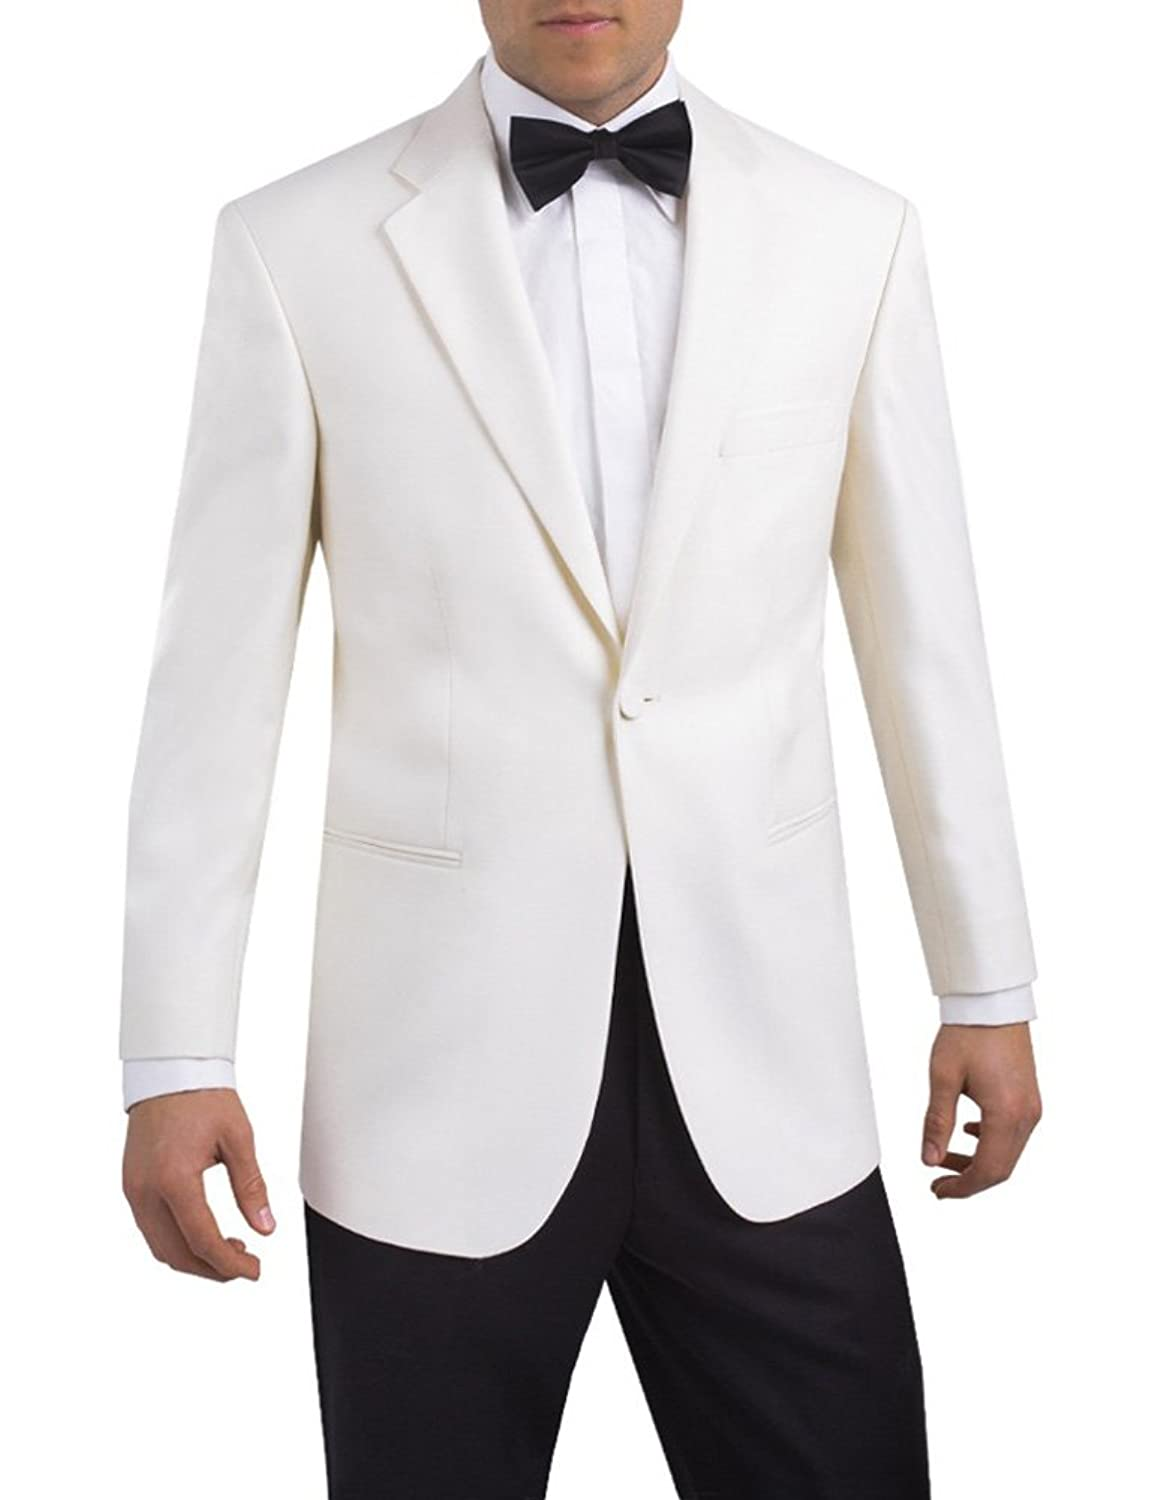 White Tuxedo Jacket Notch Lapel - White tie & Formal Events